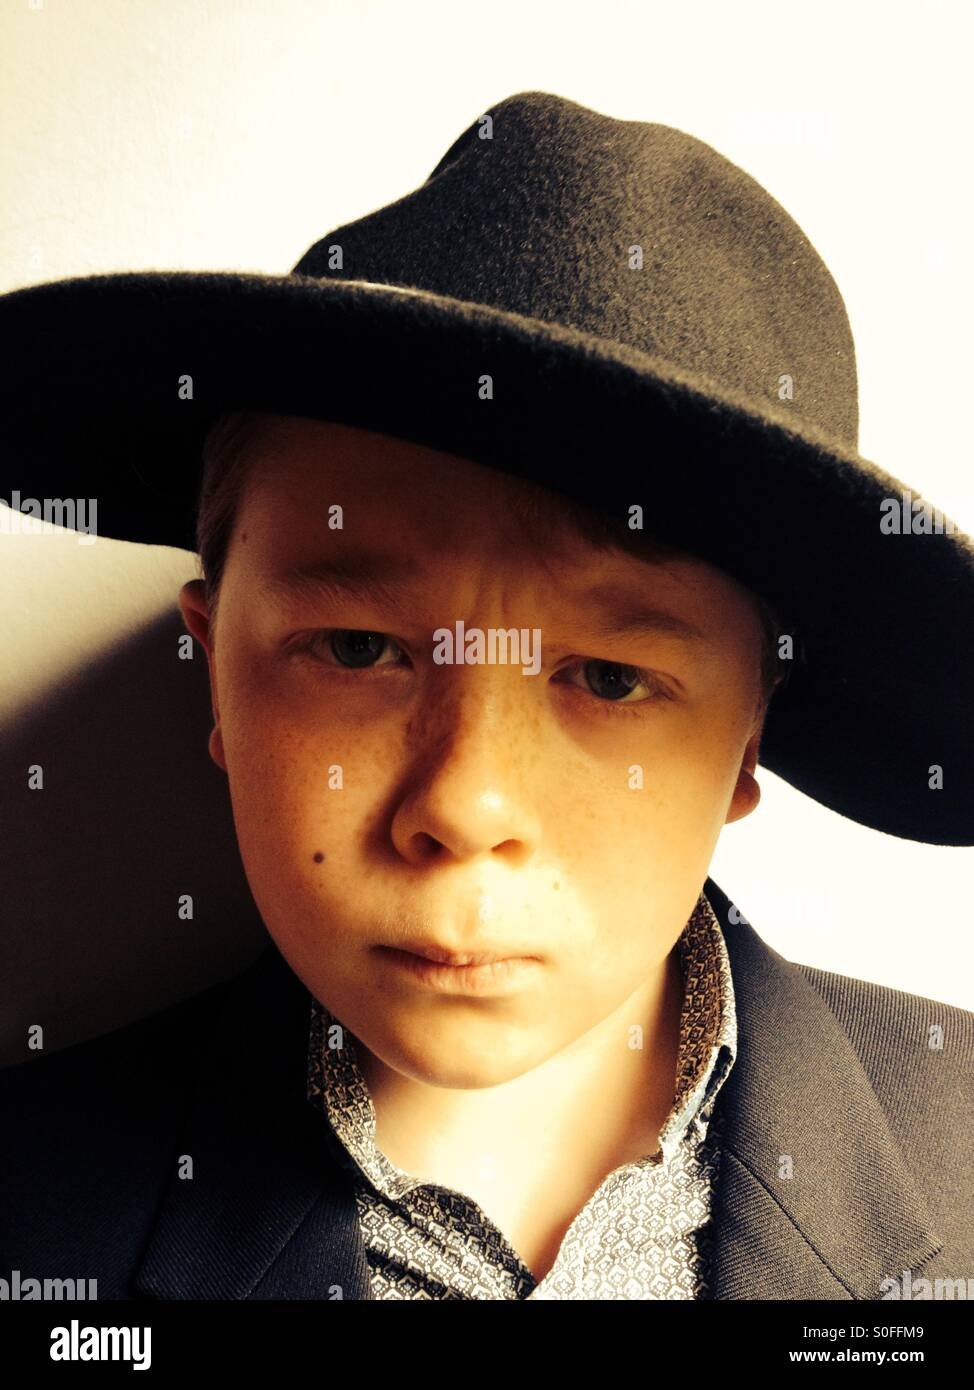 10-year old boy wearing a hat - Stock Image